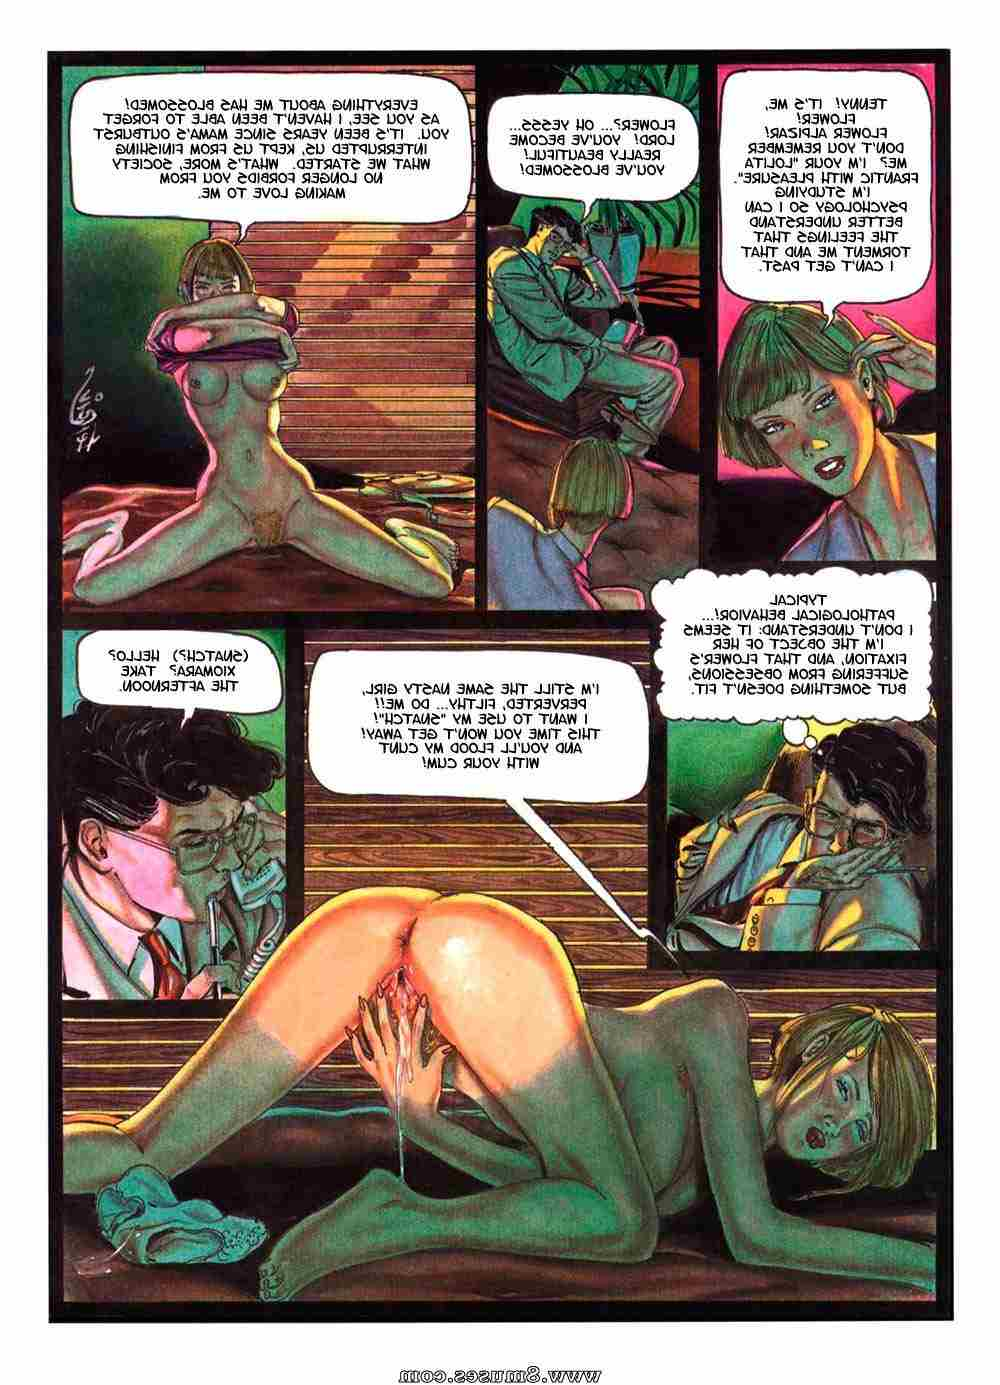 Ferocius-Comics/Forbidden-Flower Forbidden_Flower__8muses_-_Sex_and_Porn_Comics_55.jpg